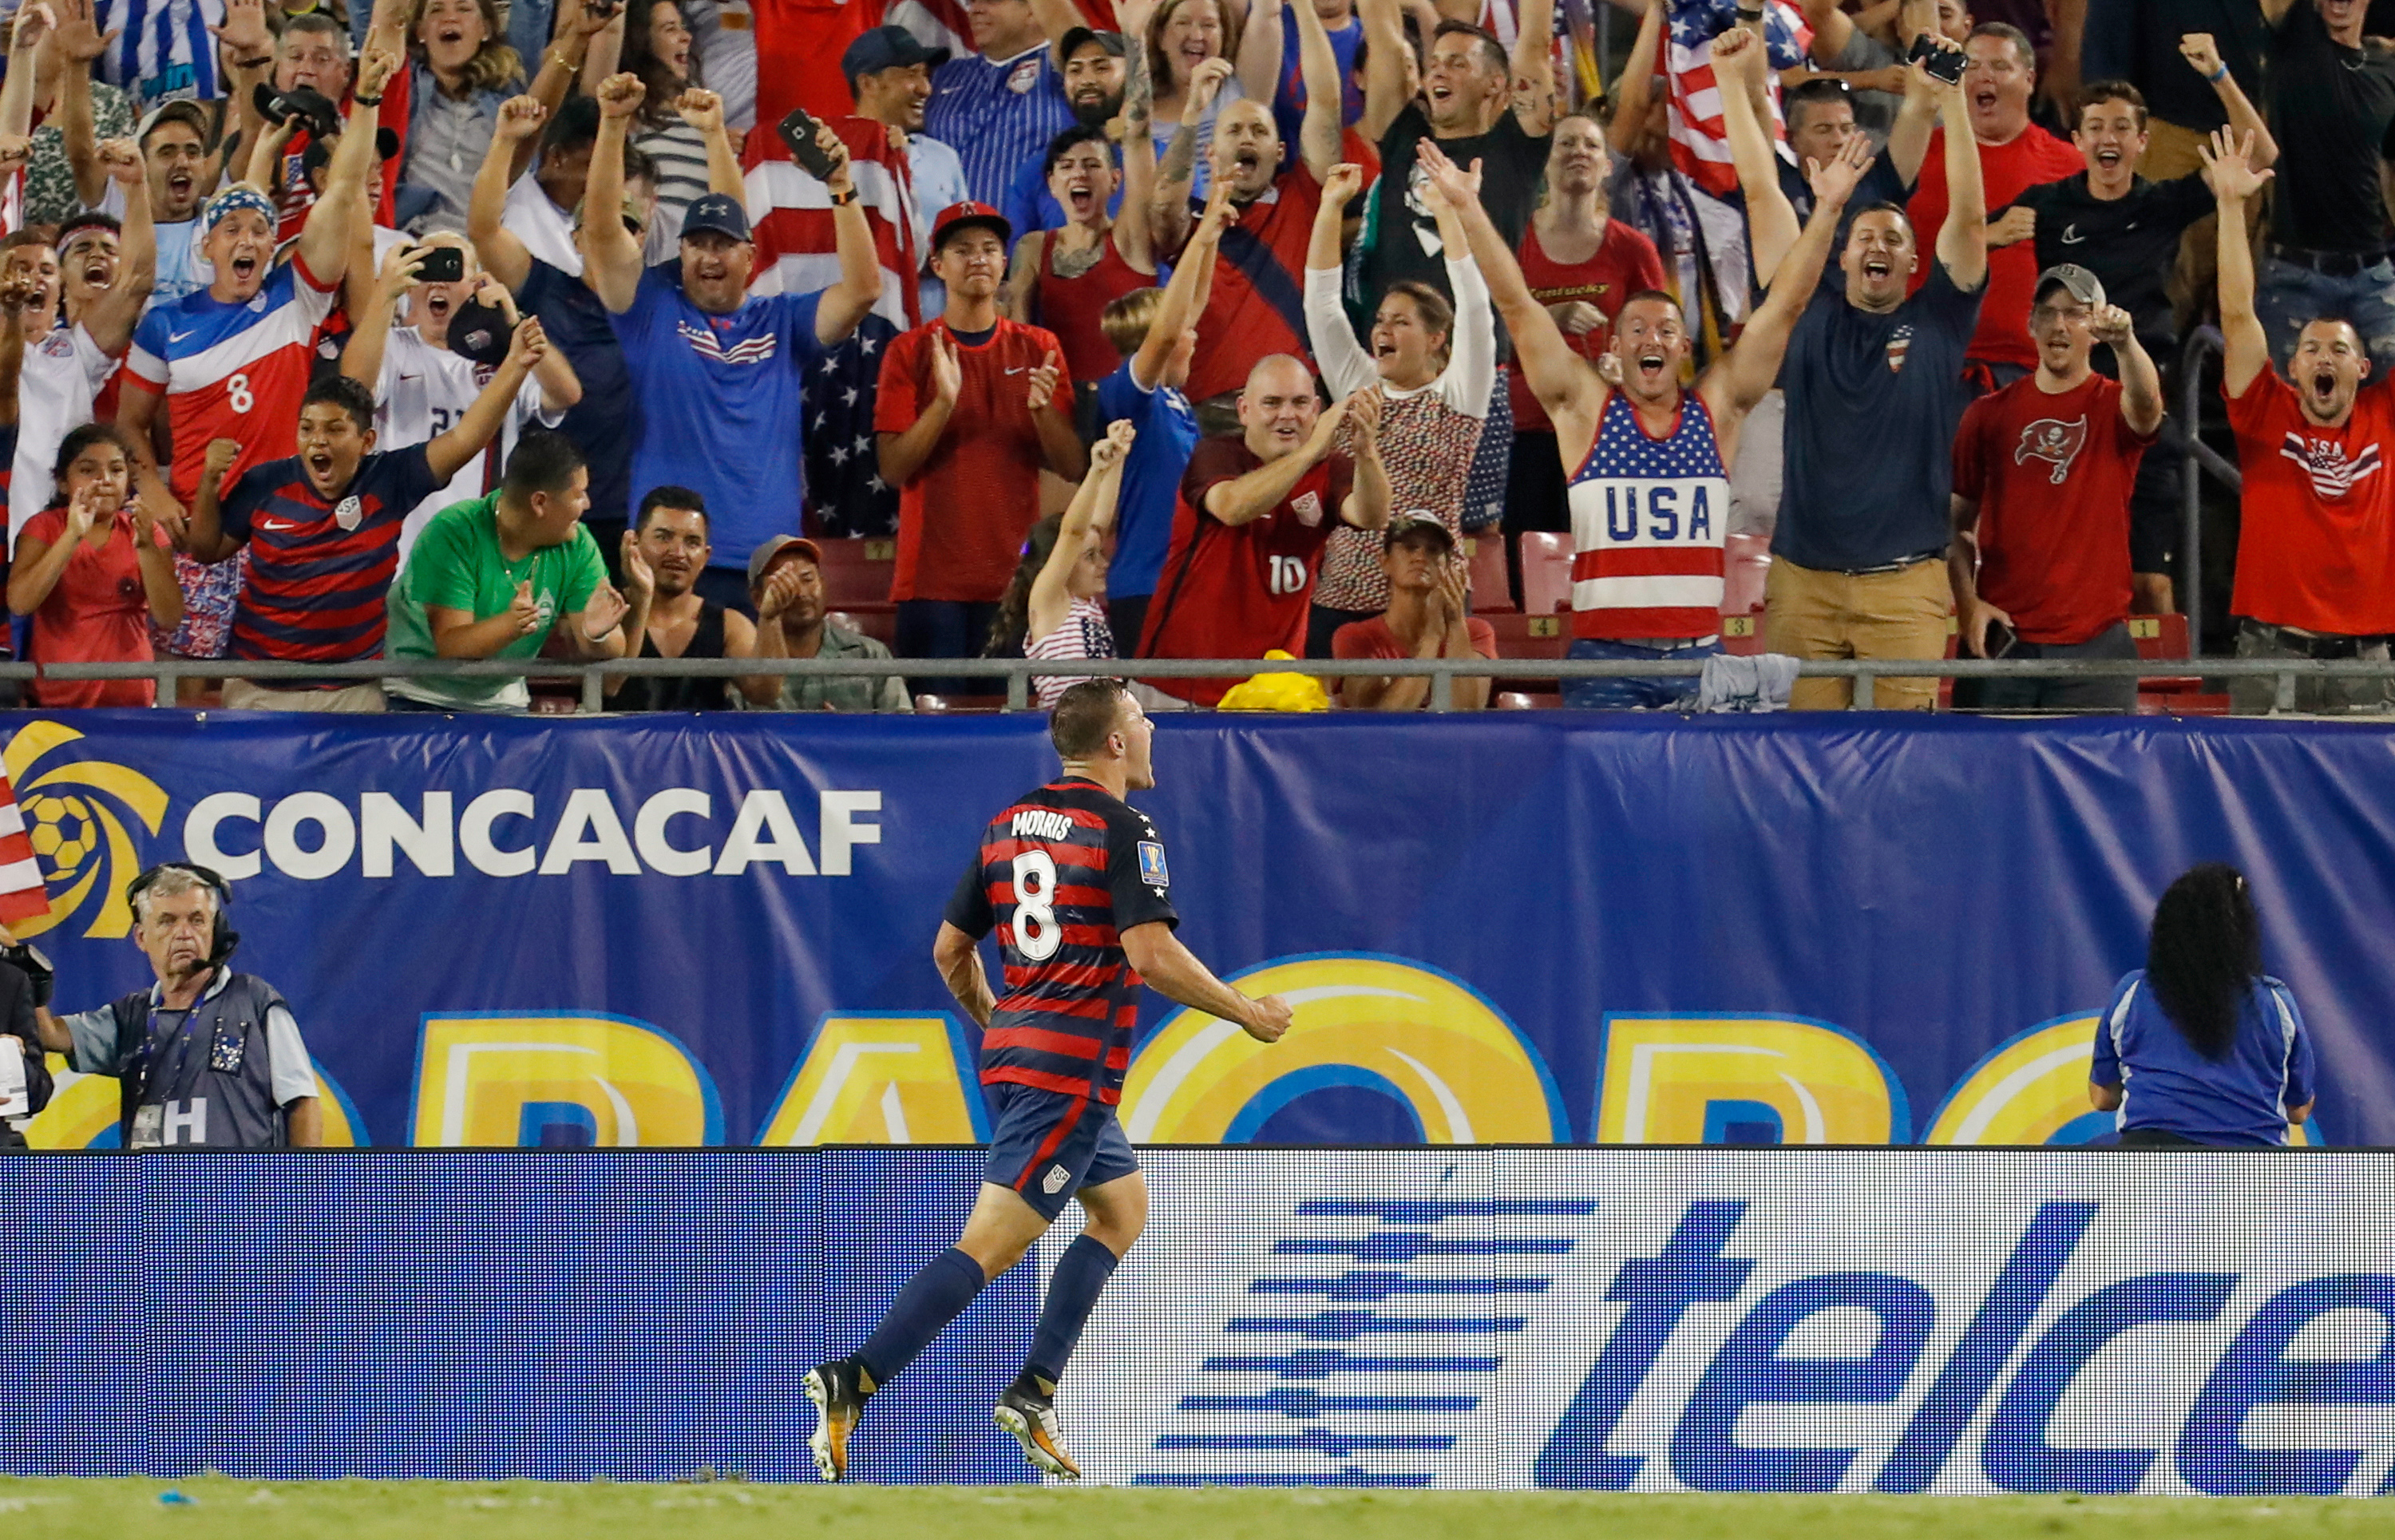 813584020-united-states-v-martinique-group-b-2017-concacaf-gold-cup.jpg